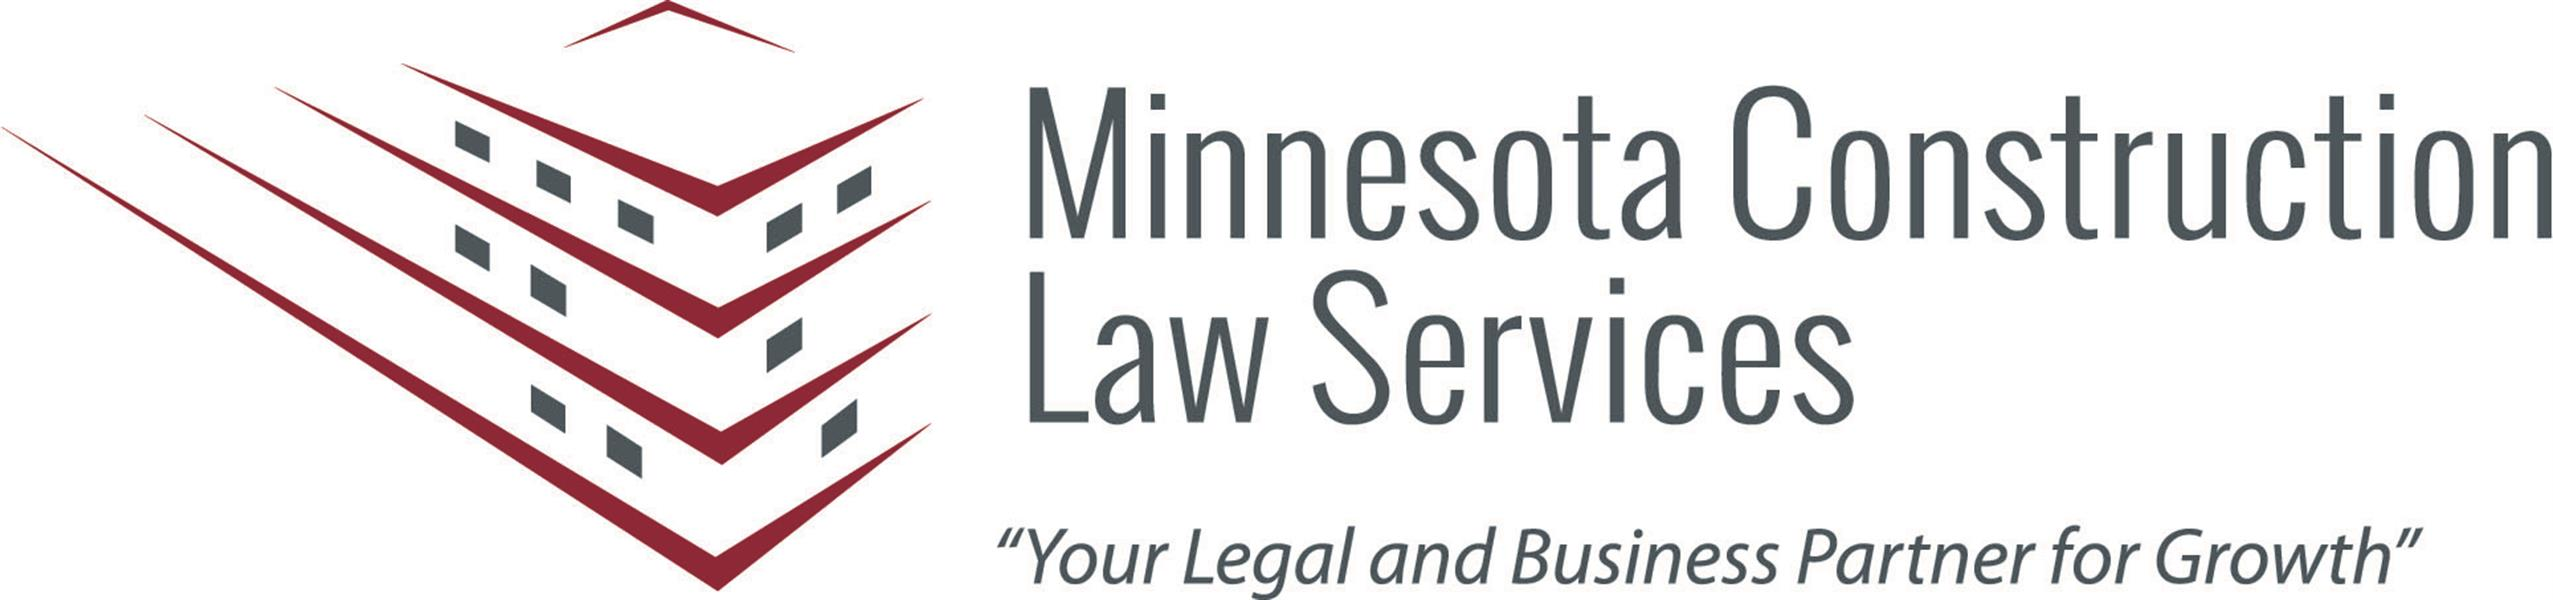 MINNESOTA CONSTRUCTION LAW SERVICES PLLC